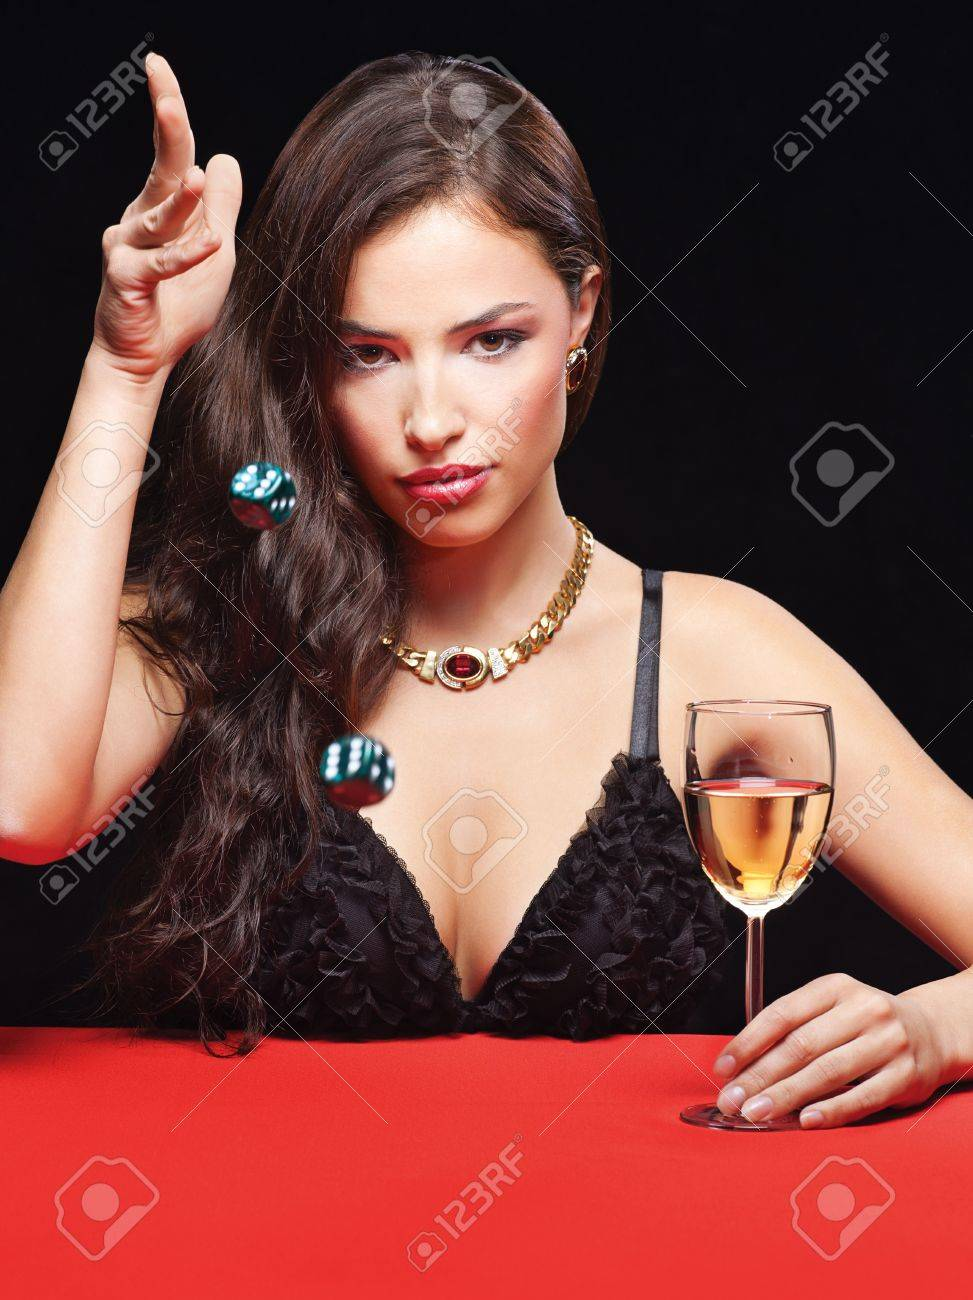 pretty young woman throwing dices on red table Stock Photo - 17166945